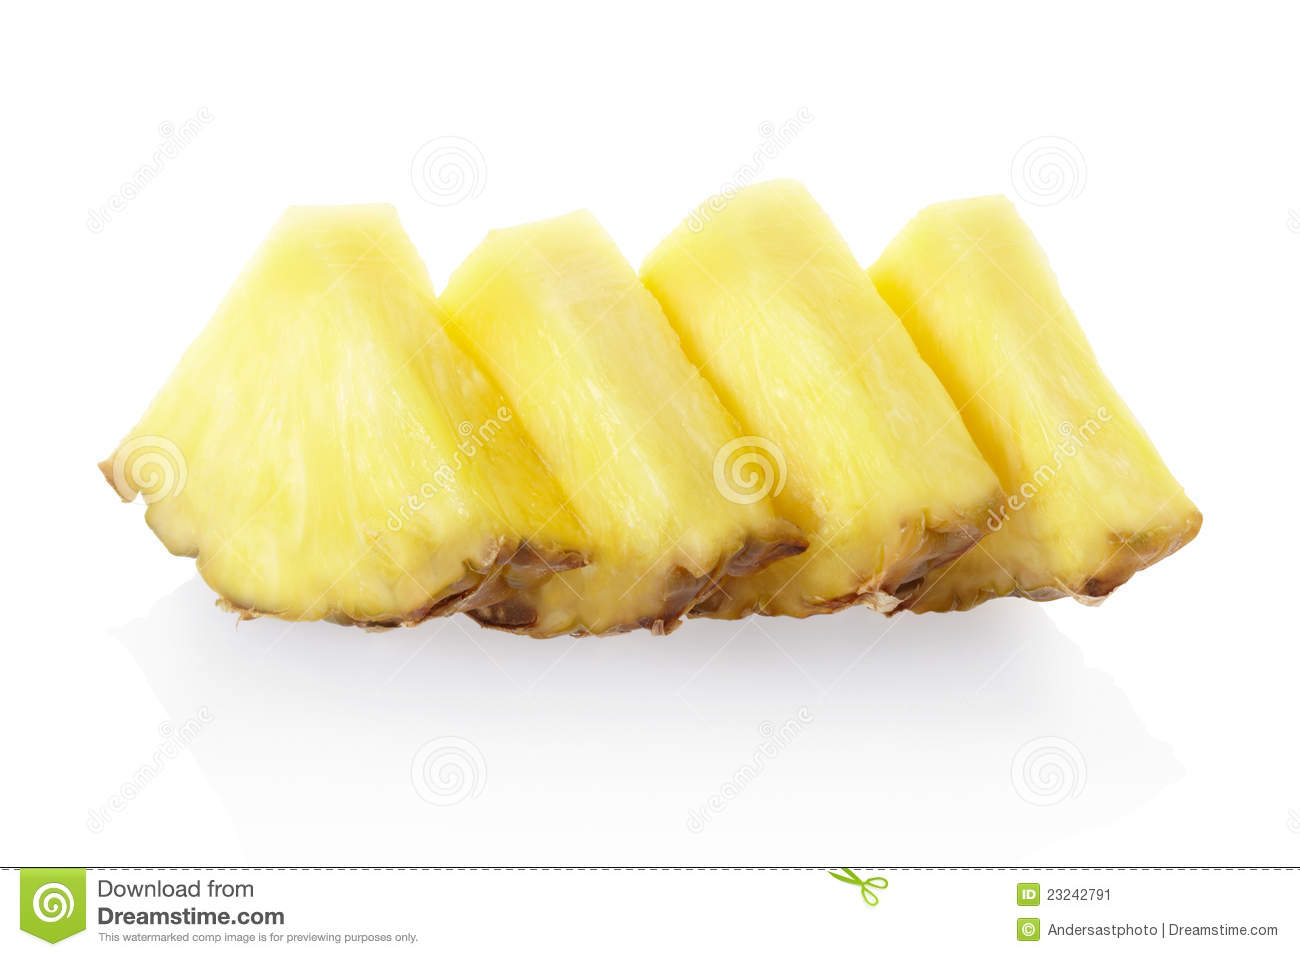 Pineapple slices on white, clipping path included.